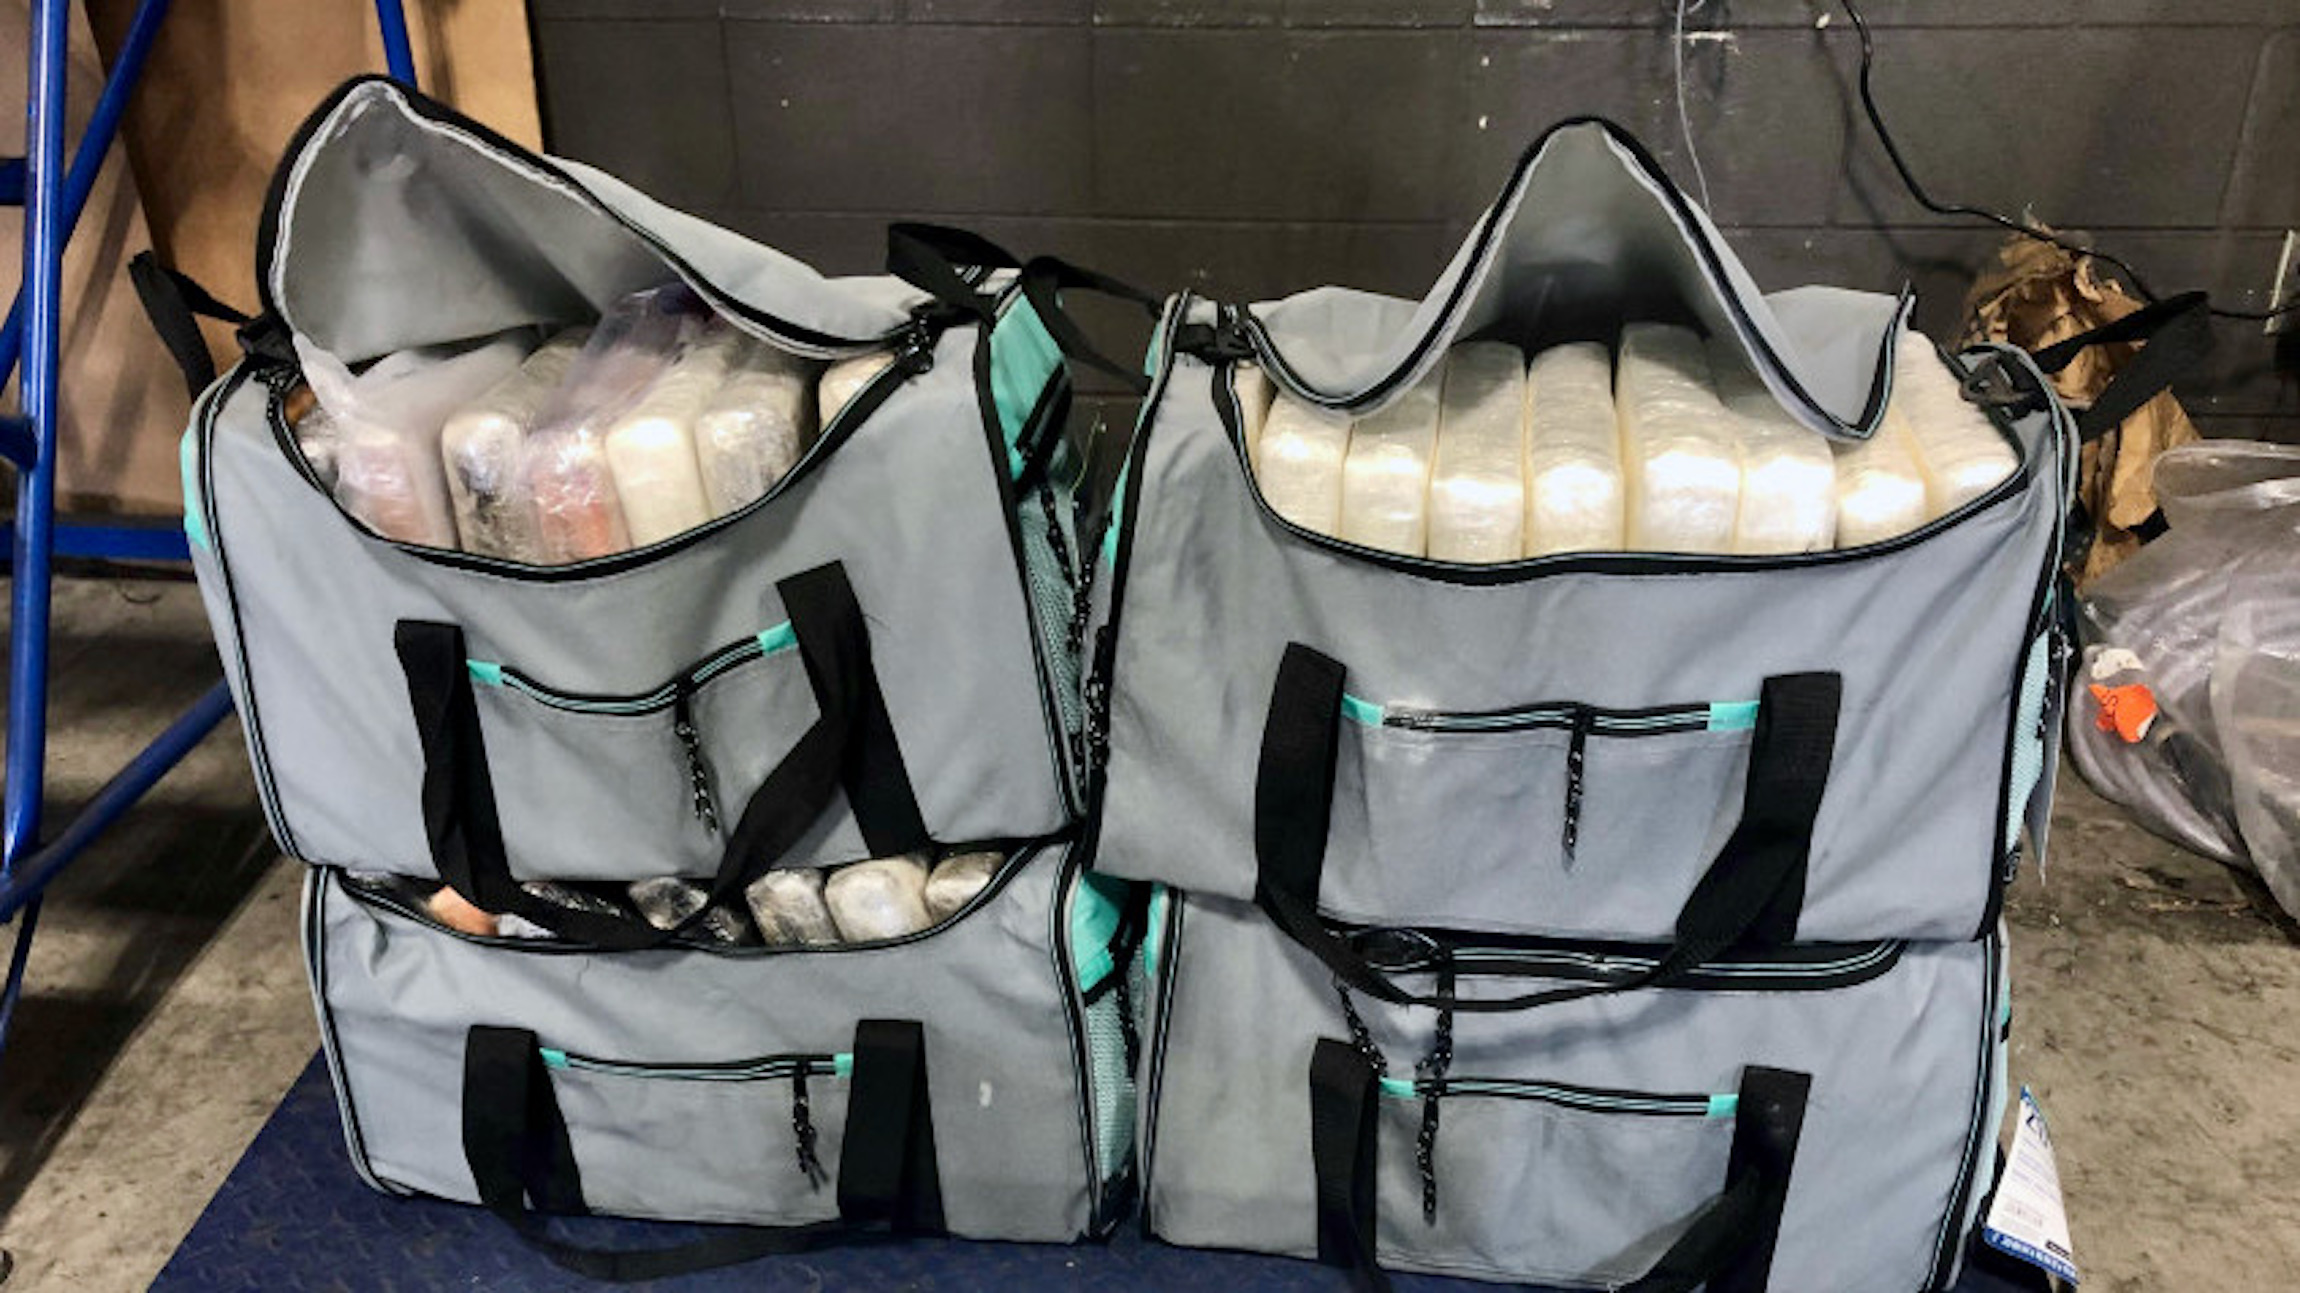 Four duffle bags filled with cocaine seized from a truck at the Canadian border.